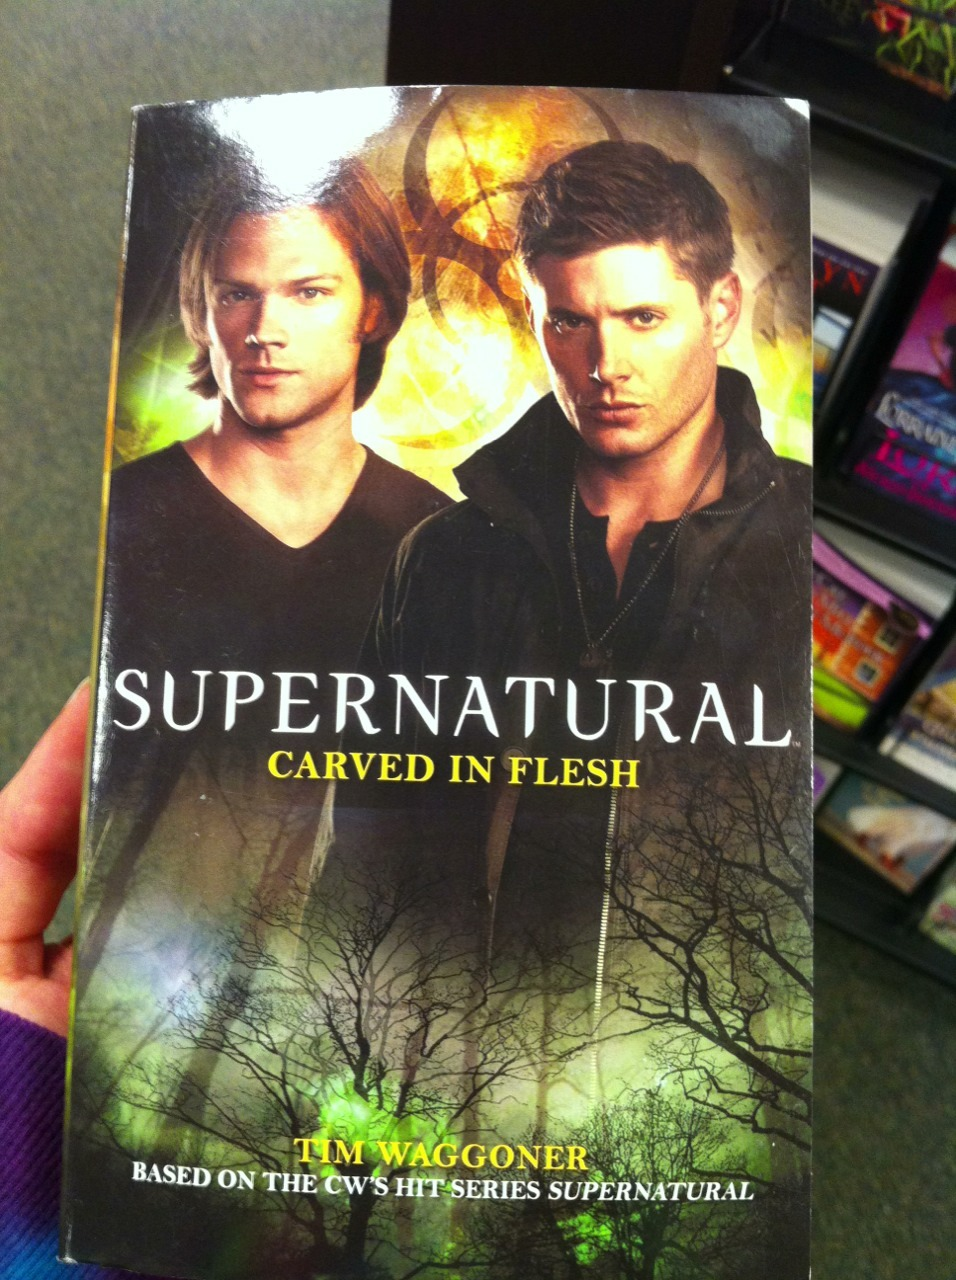 Look at what I found in Barnes & Noble.